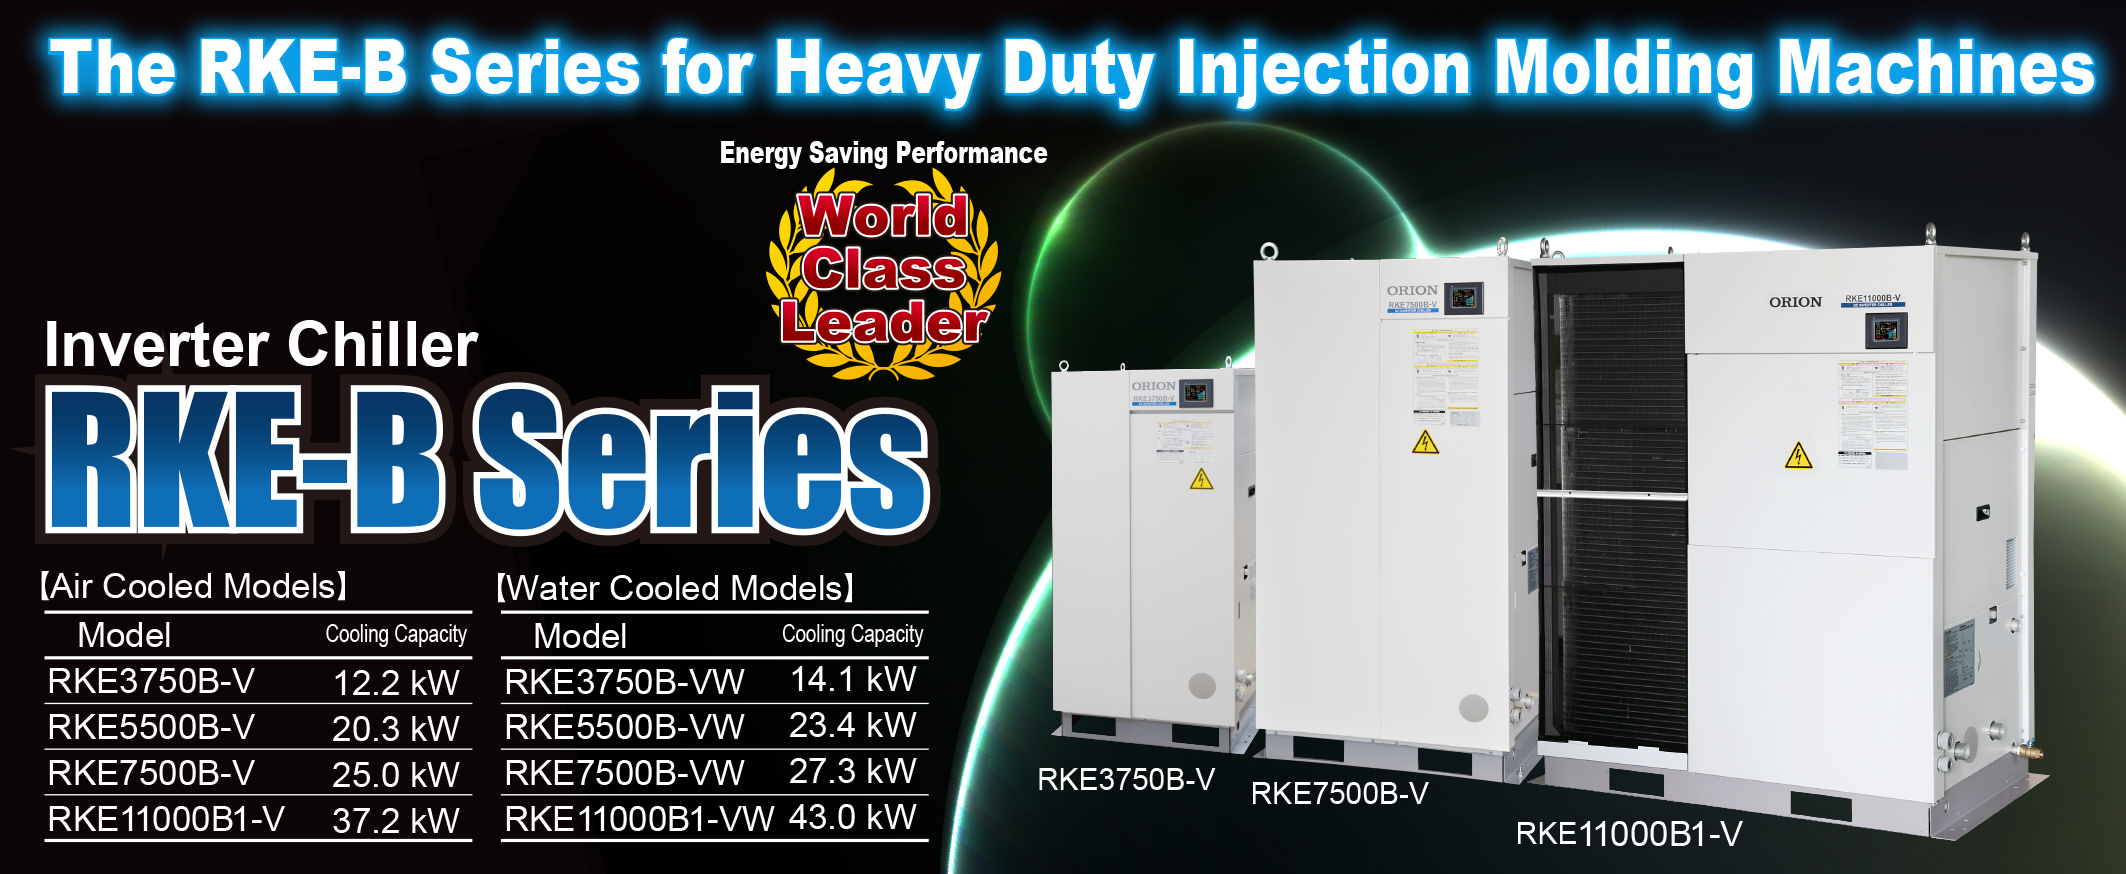 The RKE-B Series for Heavy Duty Injection Molding Machines. Inverter Chiller RKE-B Series.